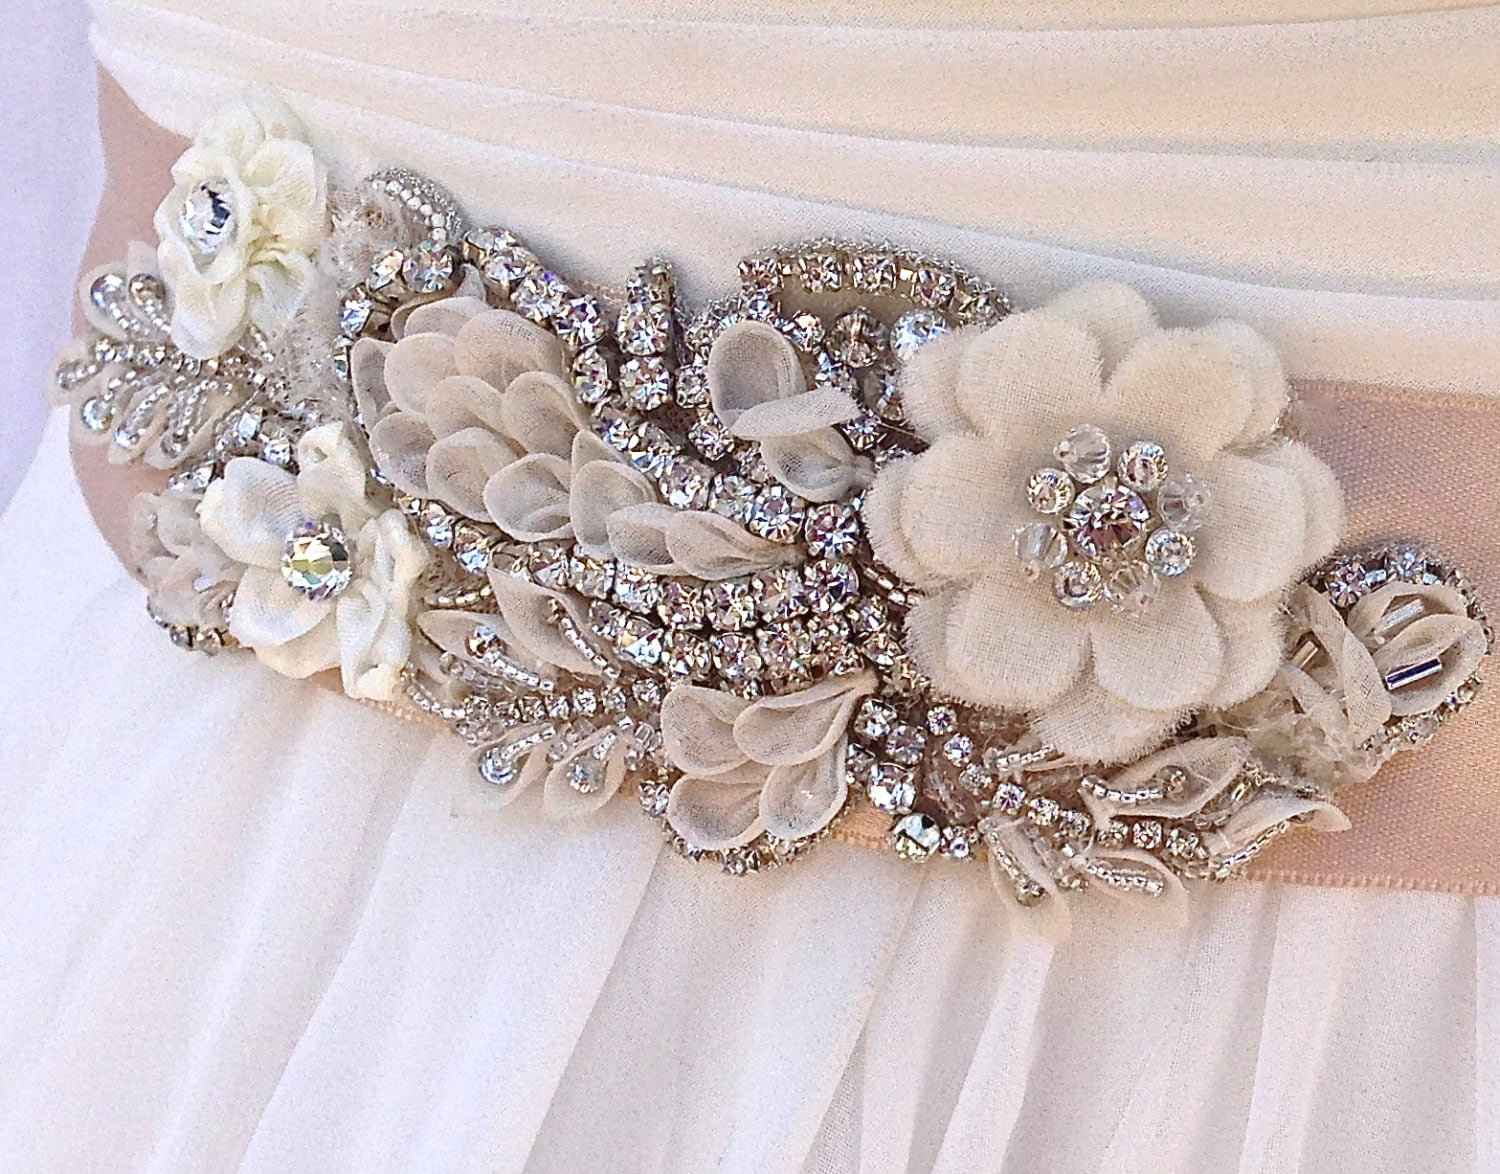 Crystal Beaded Bridal Sash-Wedding Sash In Champagne